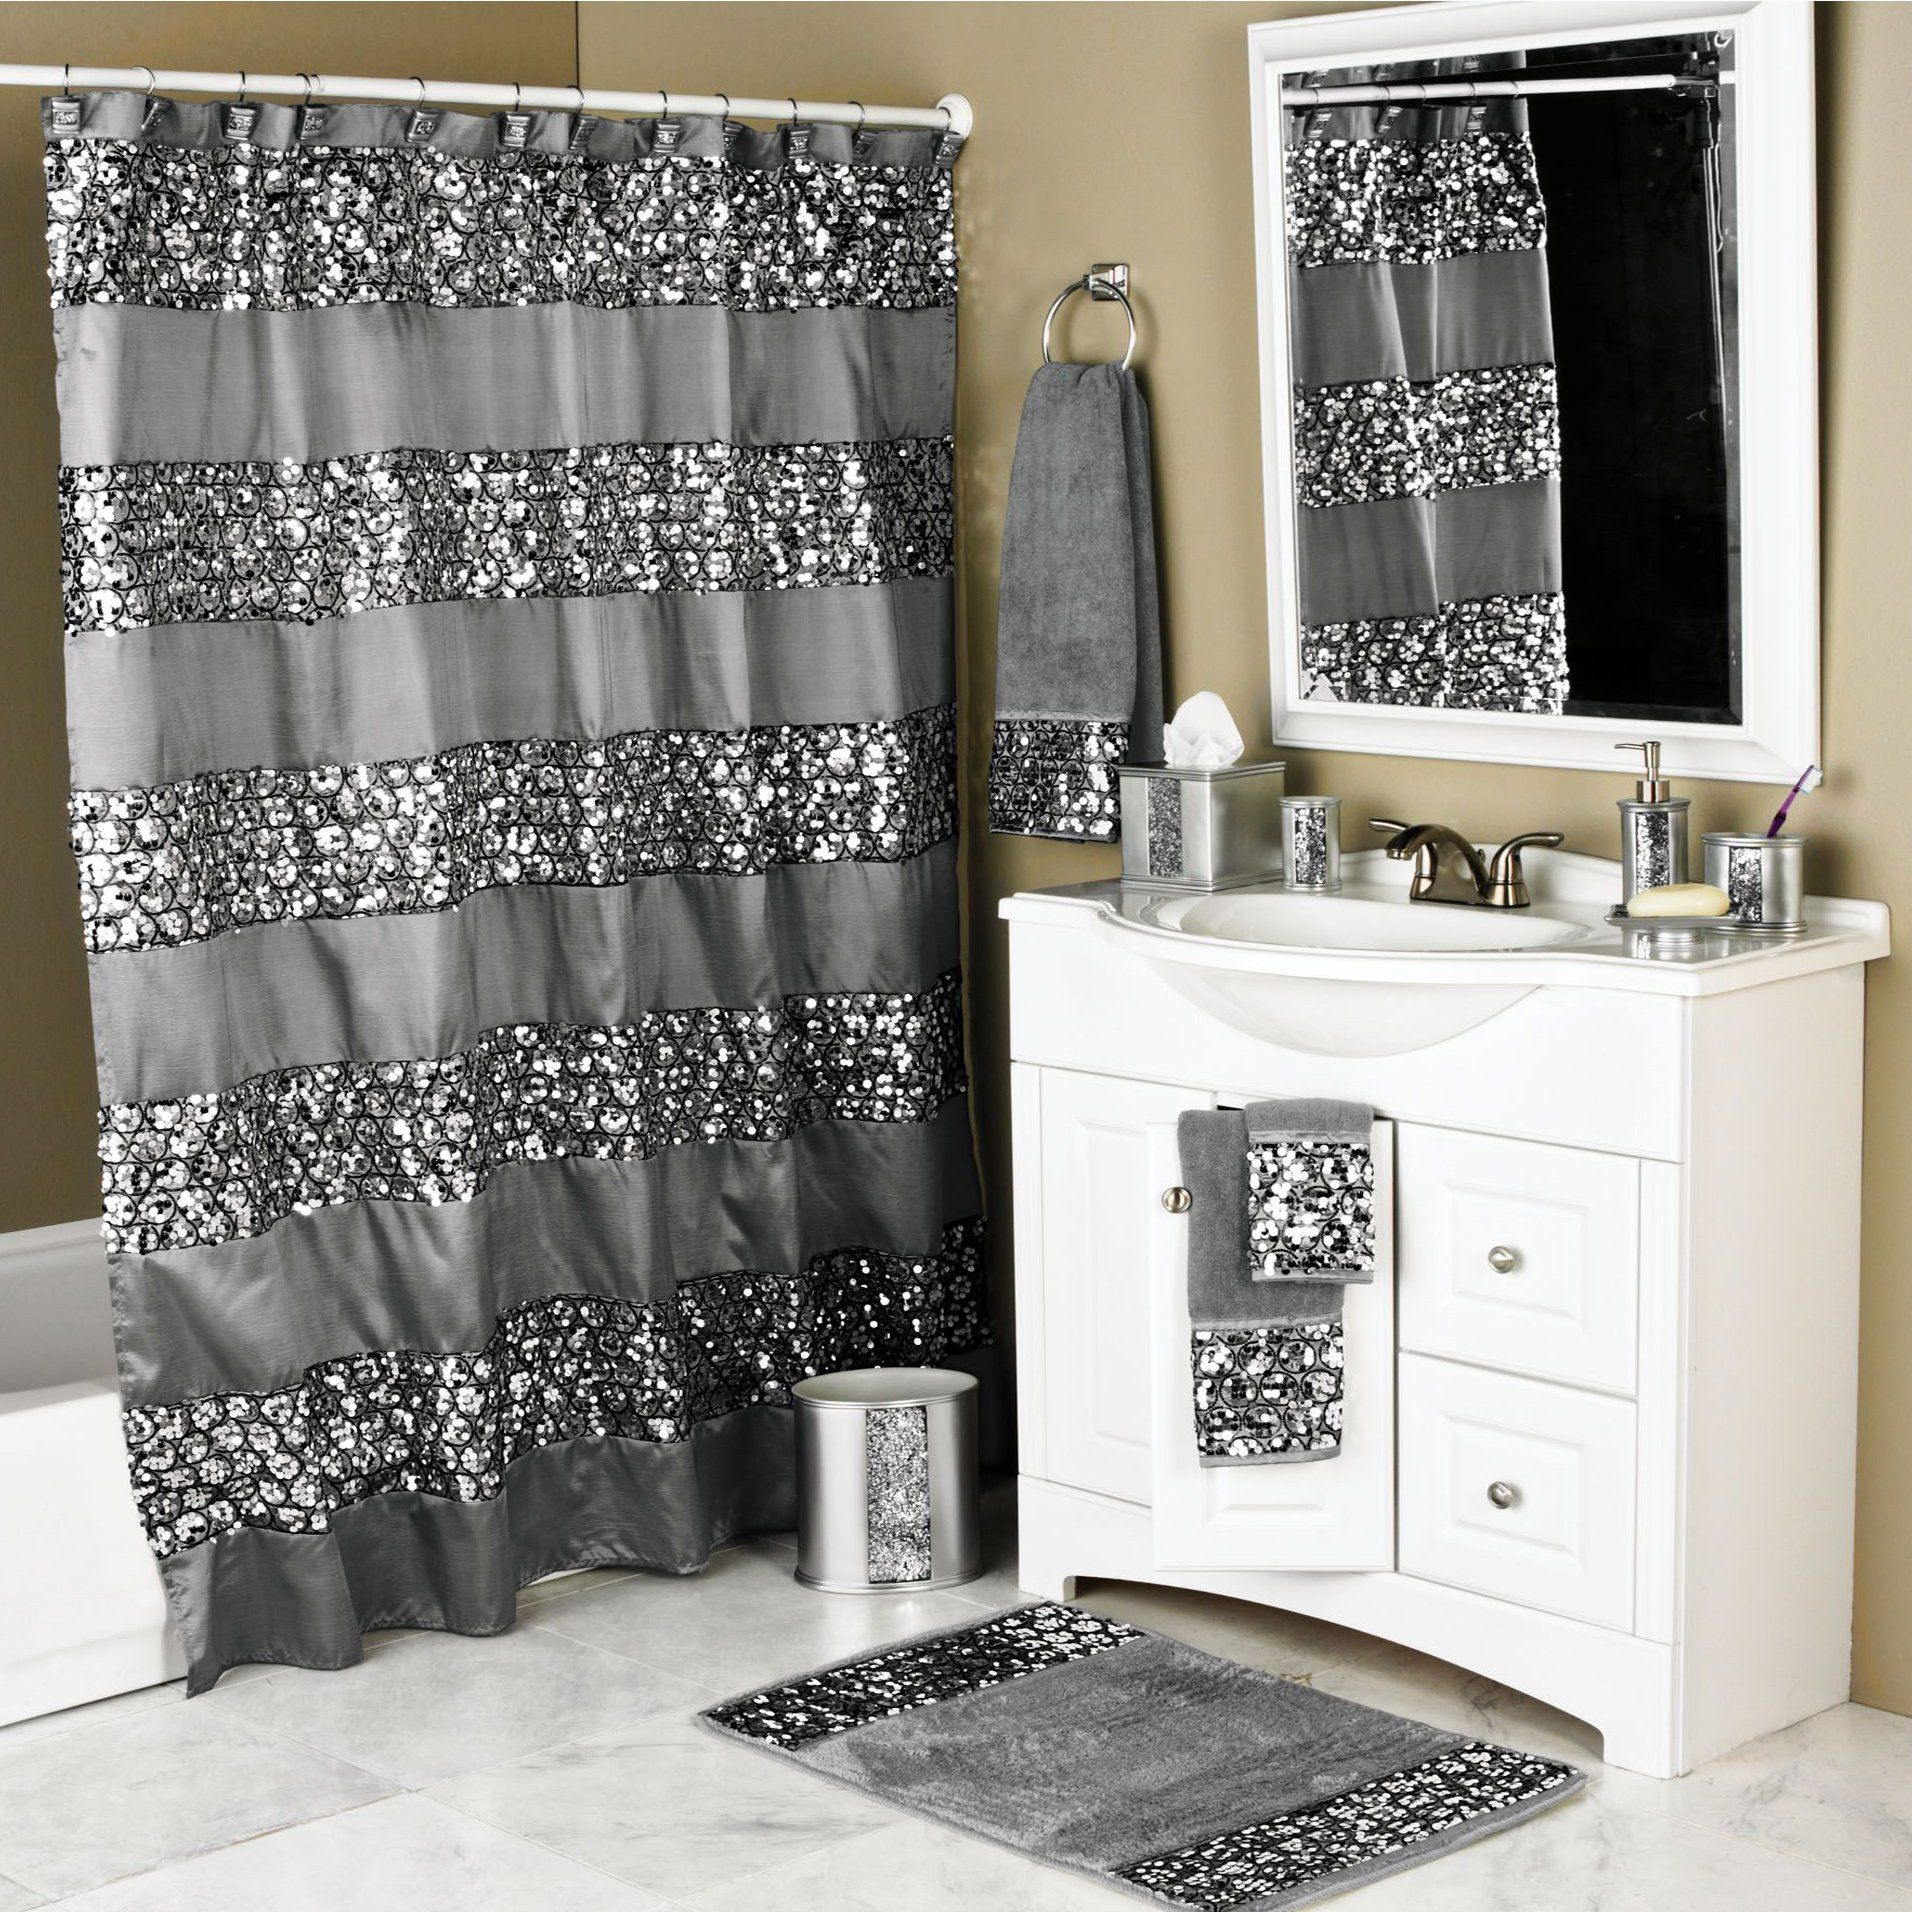 Luxury Shower Curtain And Hooks Set Or Separates Curtain Silver